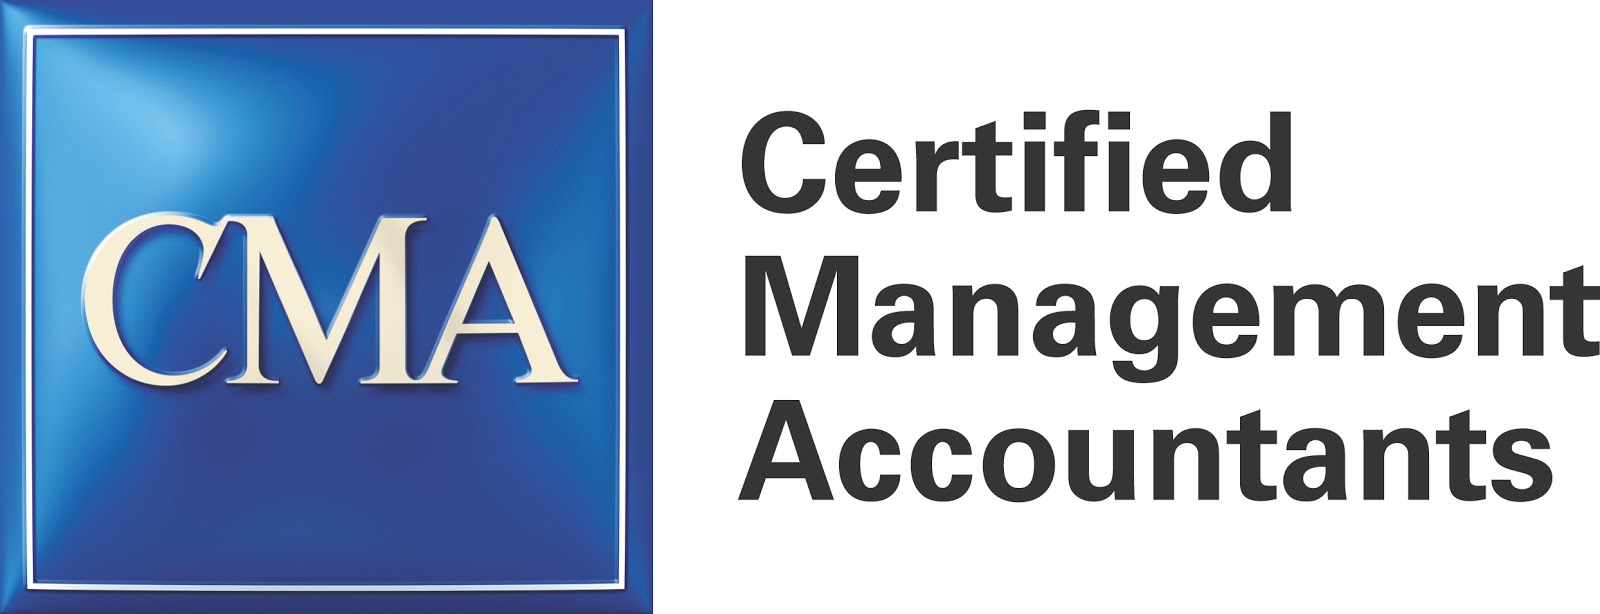 Philippine Cpa Review Testbanks In Certified Management Accountant